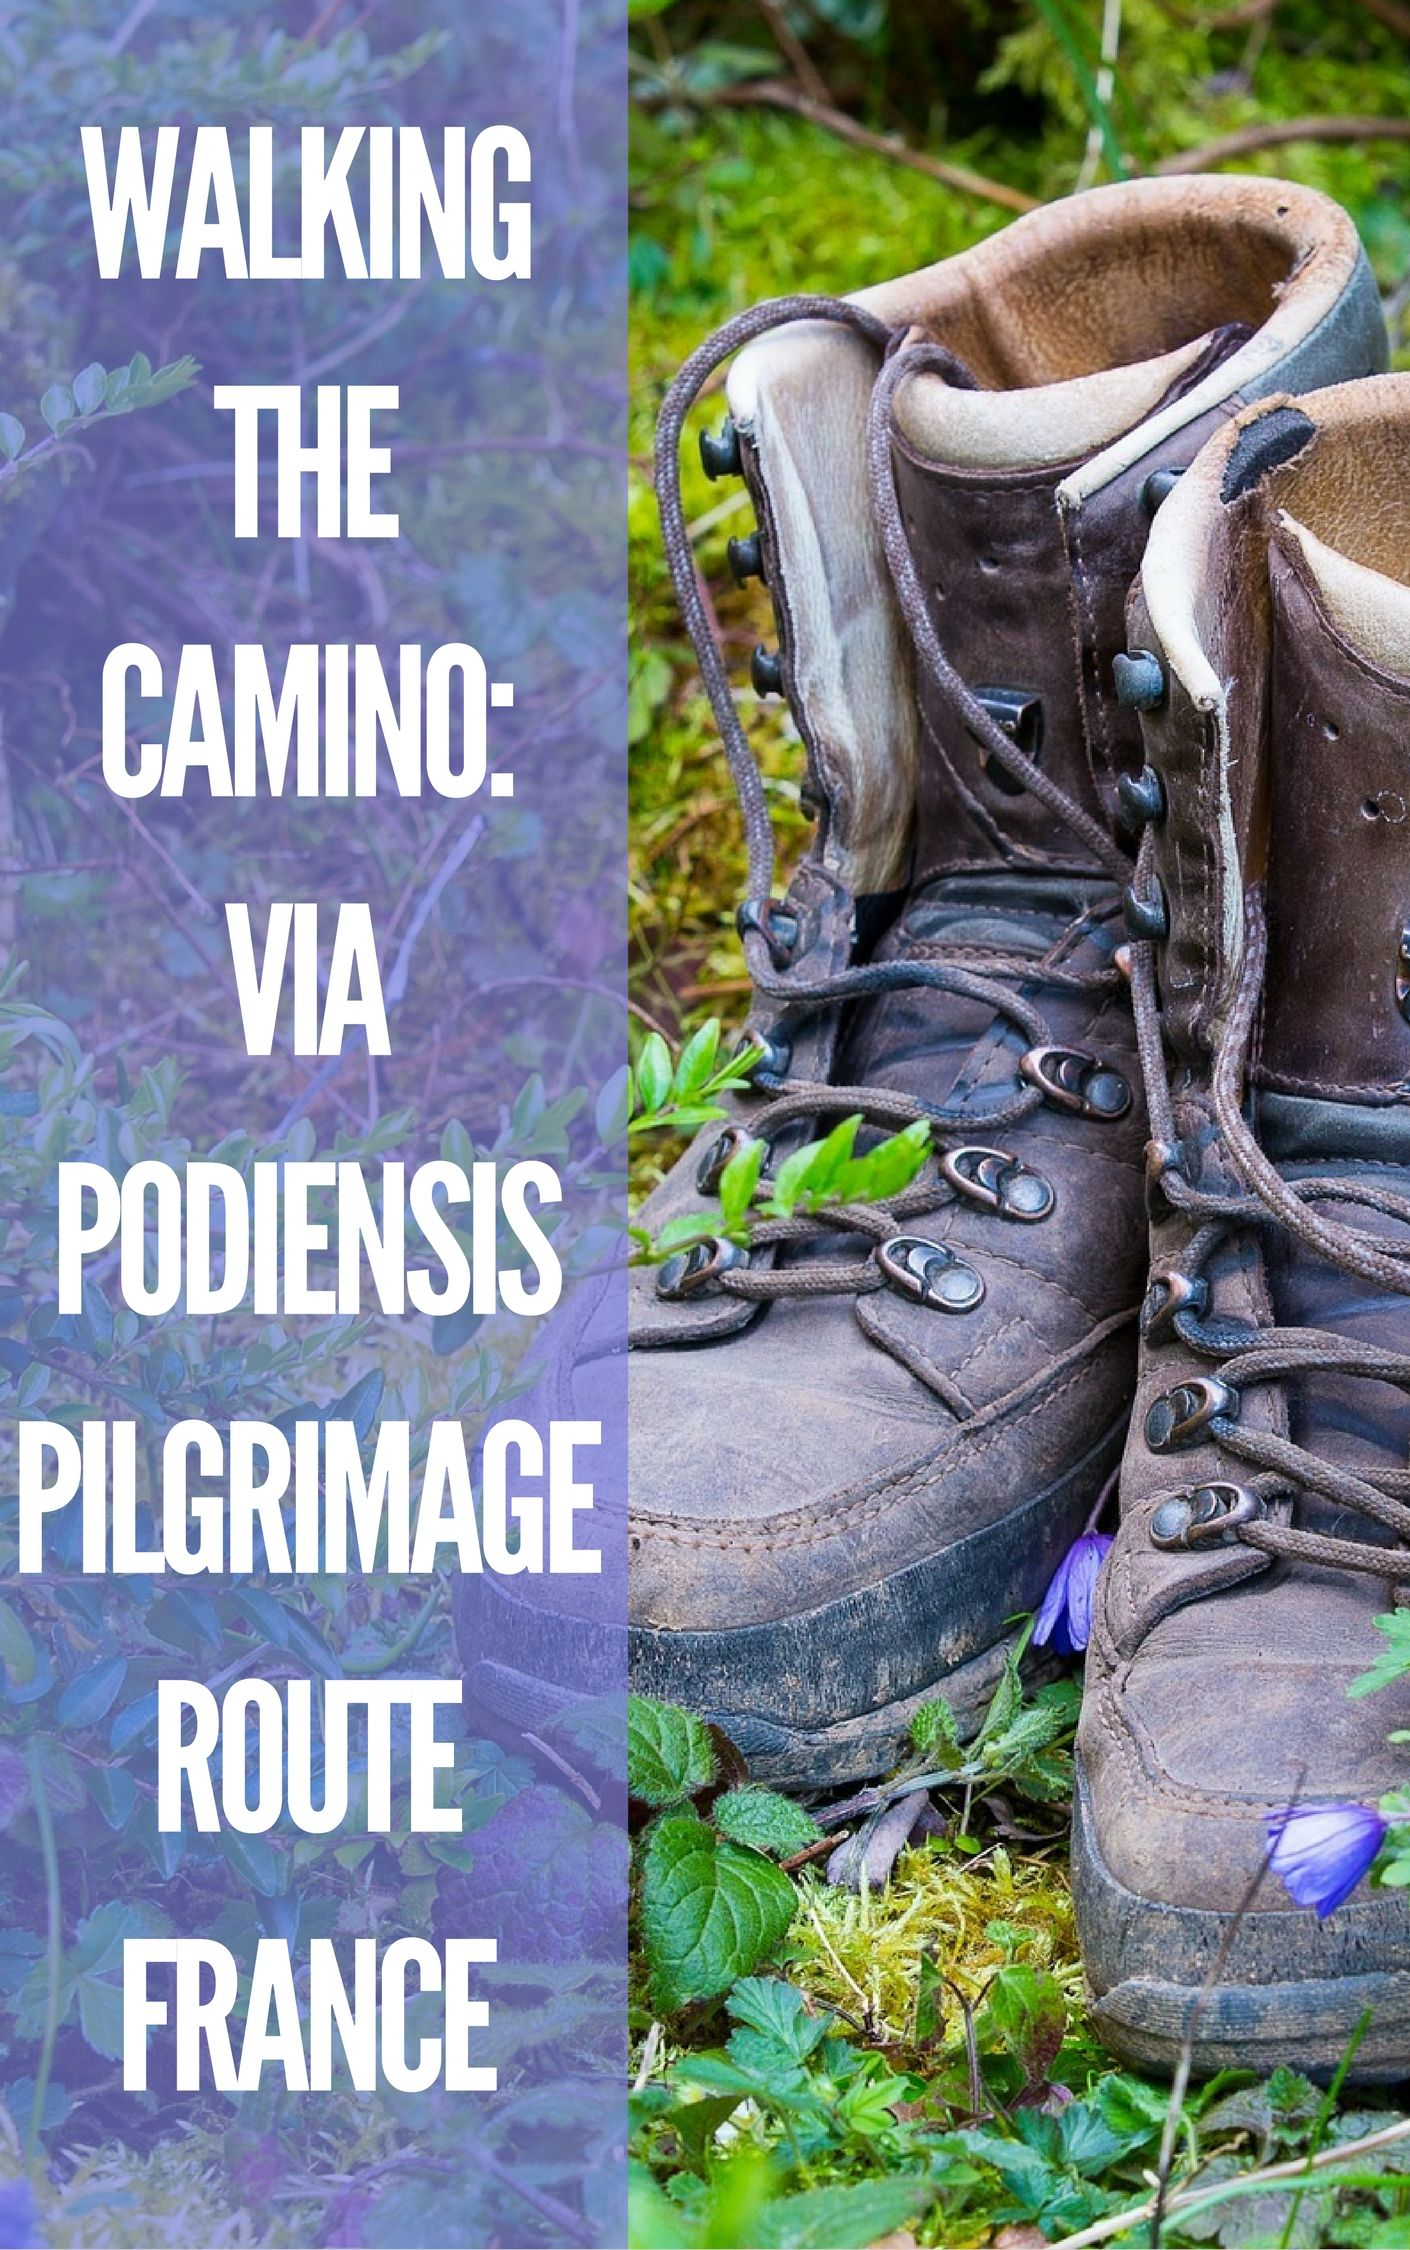 When planning to walk the Camino, the obvious choice for most travelers is the Camino de Santiago, or Way of St James.  But for those looking for a quieter, more rural, less trodden Camino experience, the Via Podiensis is a pilgrimage which winds through France. Click pin through to post for more info.